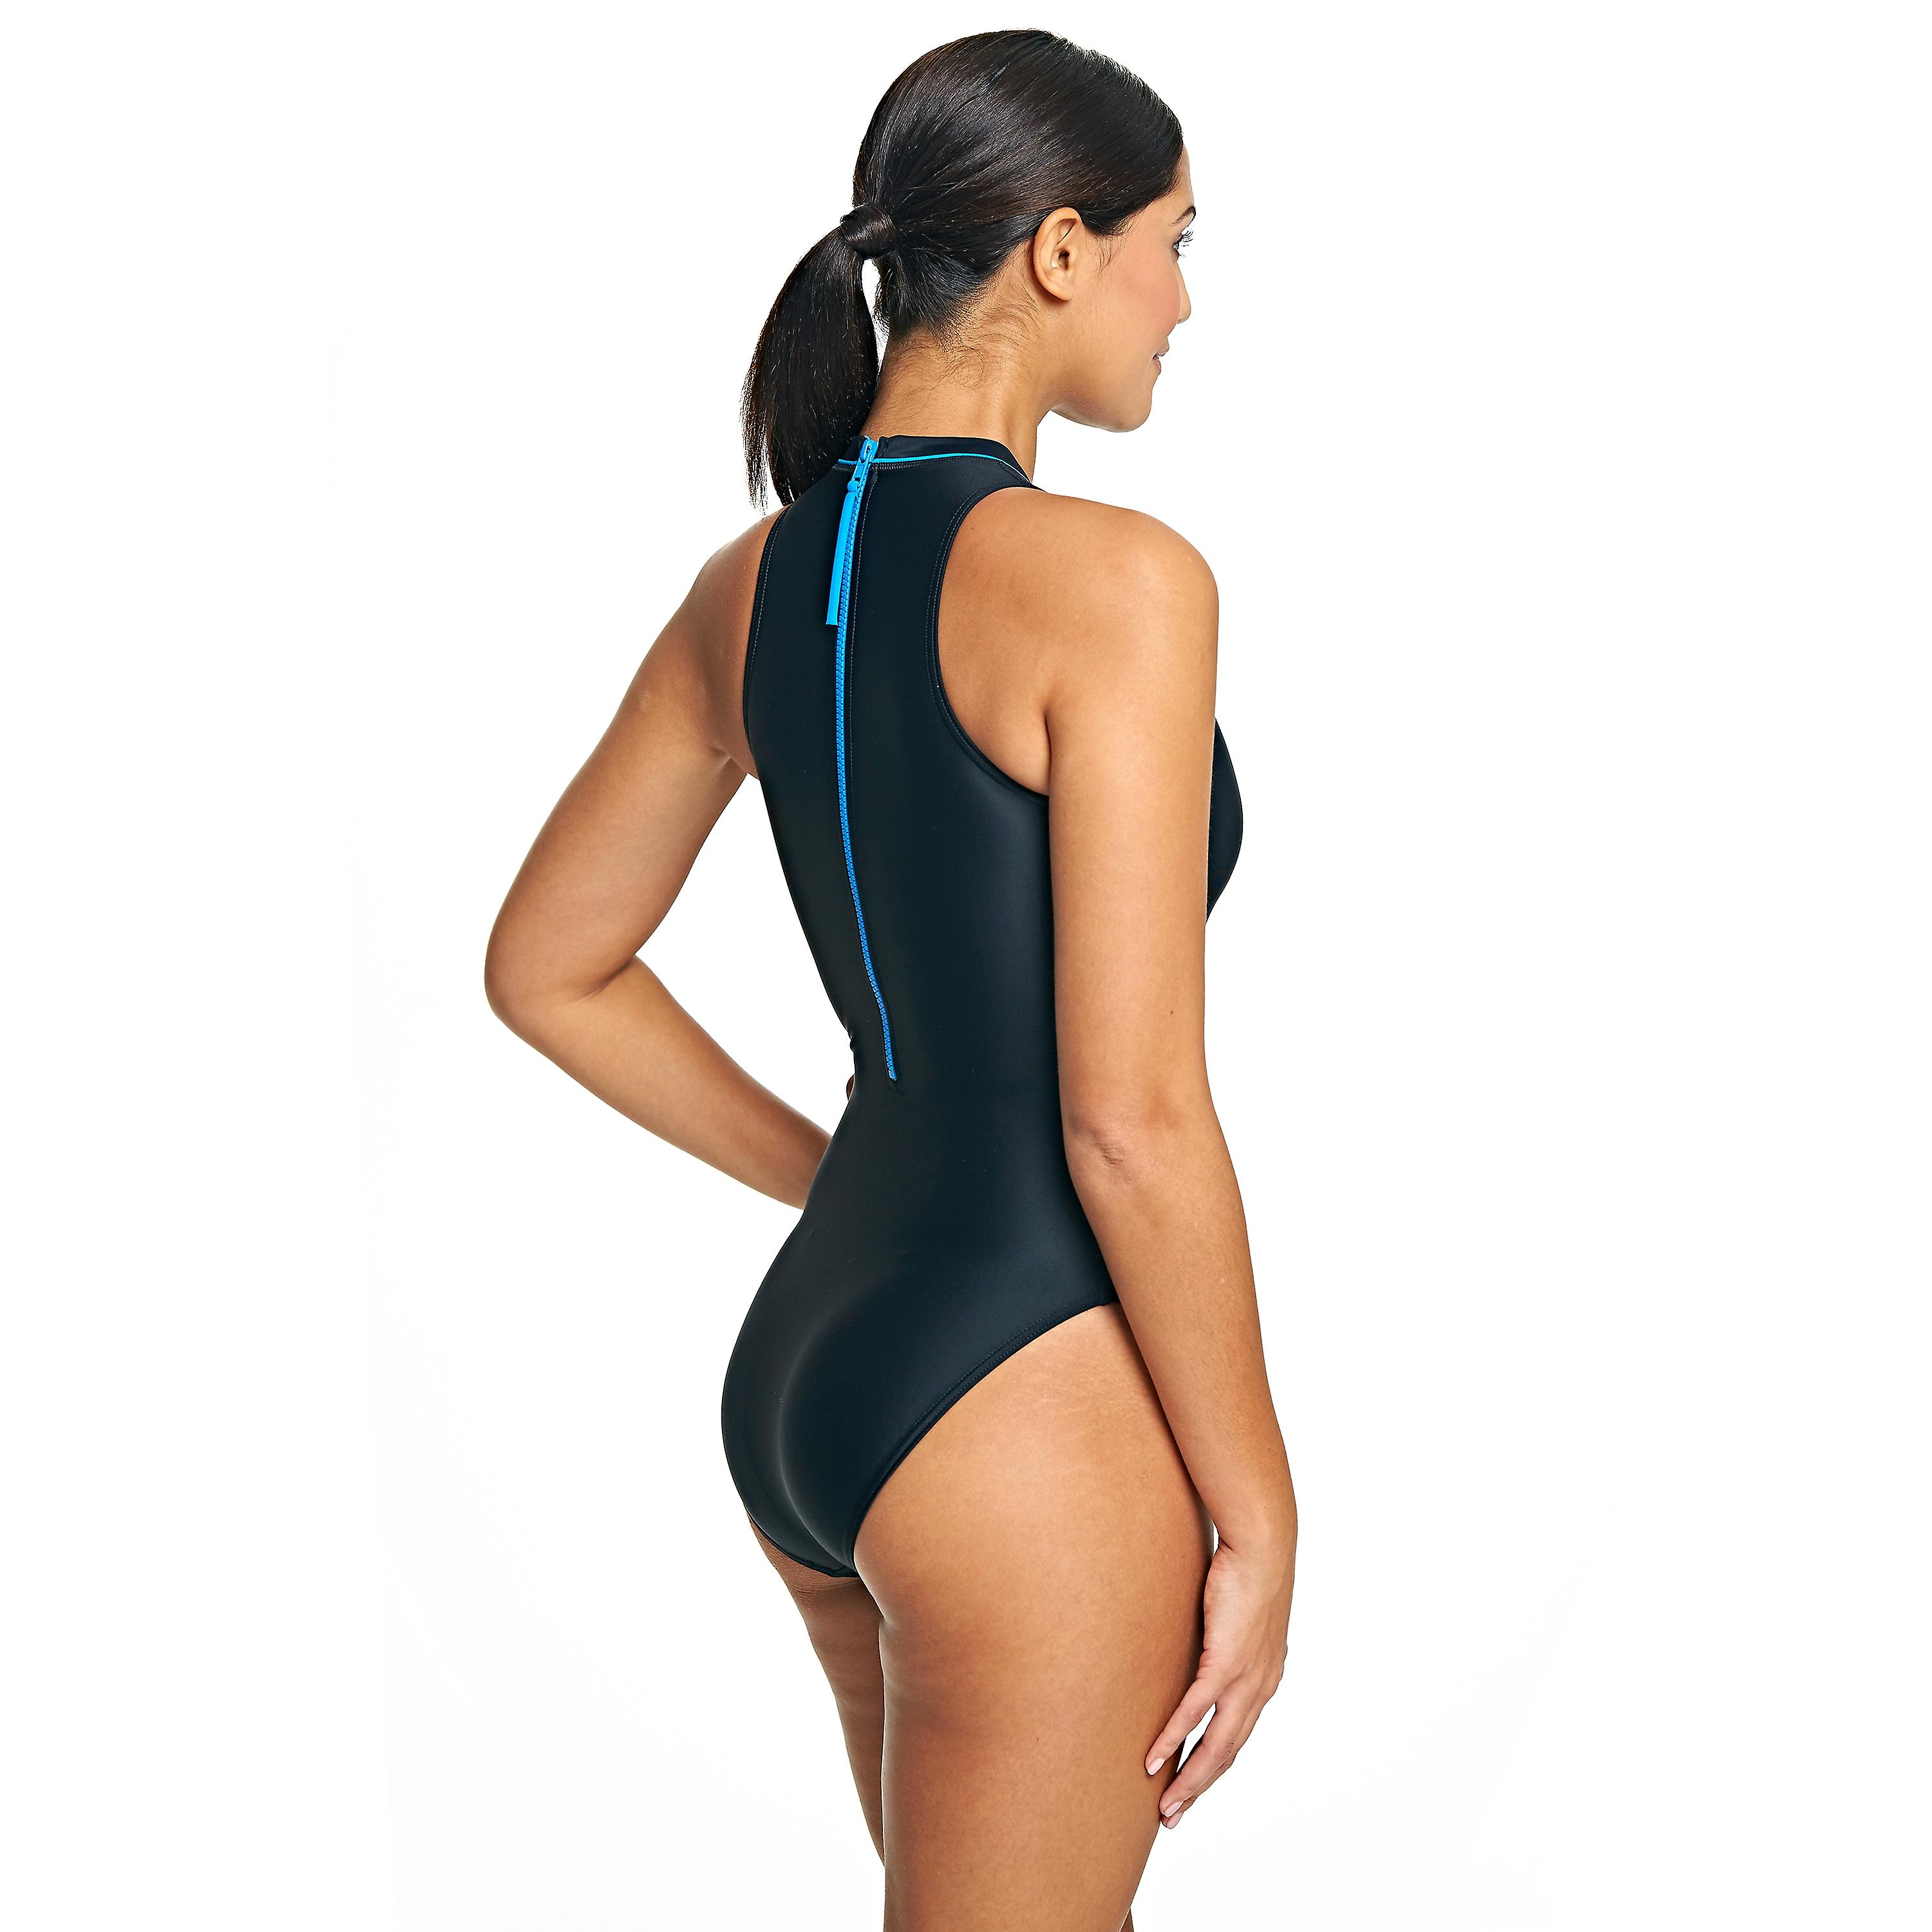 523603cfa7 Zoggs Women's Cable Highneck Swimming Costume in Black / Blue - Chlorine  Resistant | Fruugo